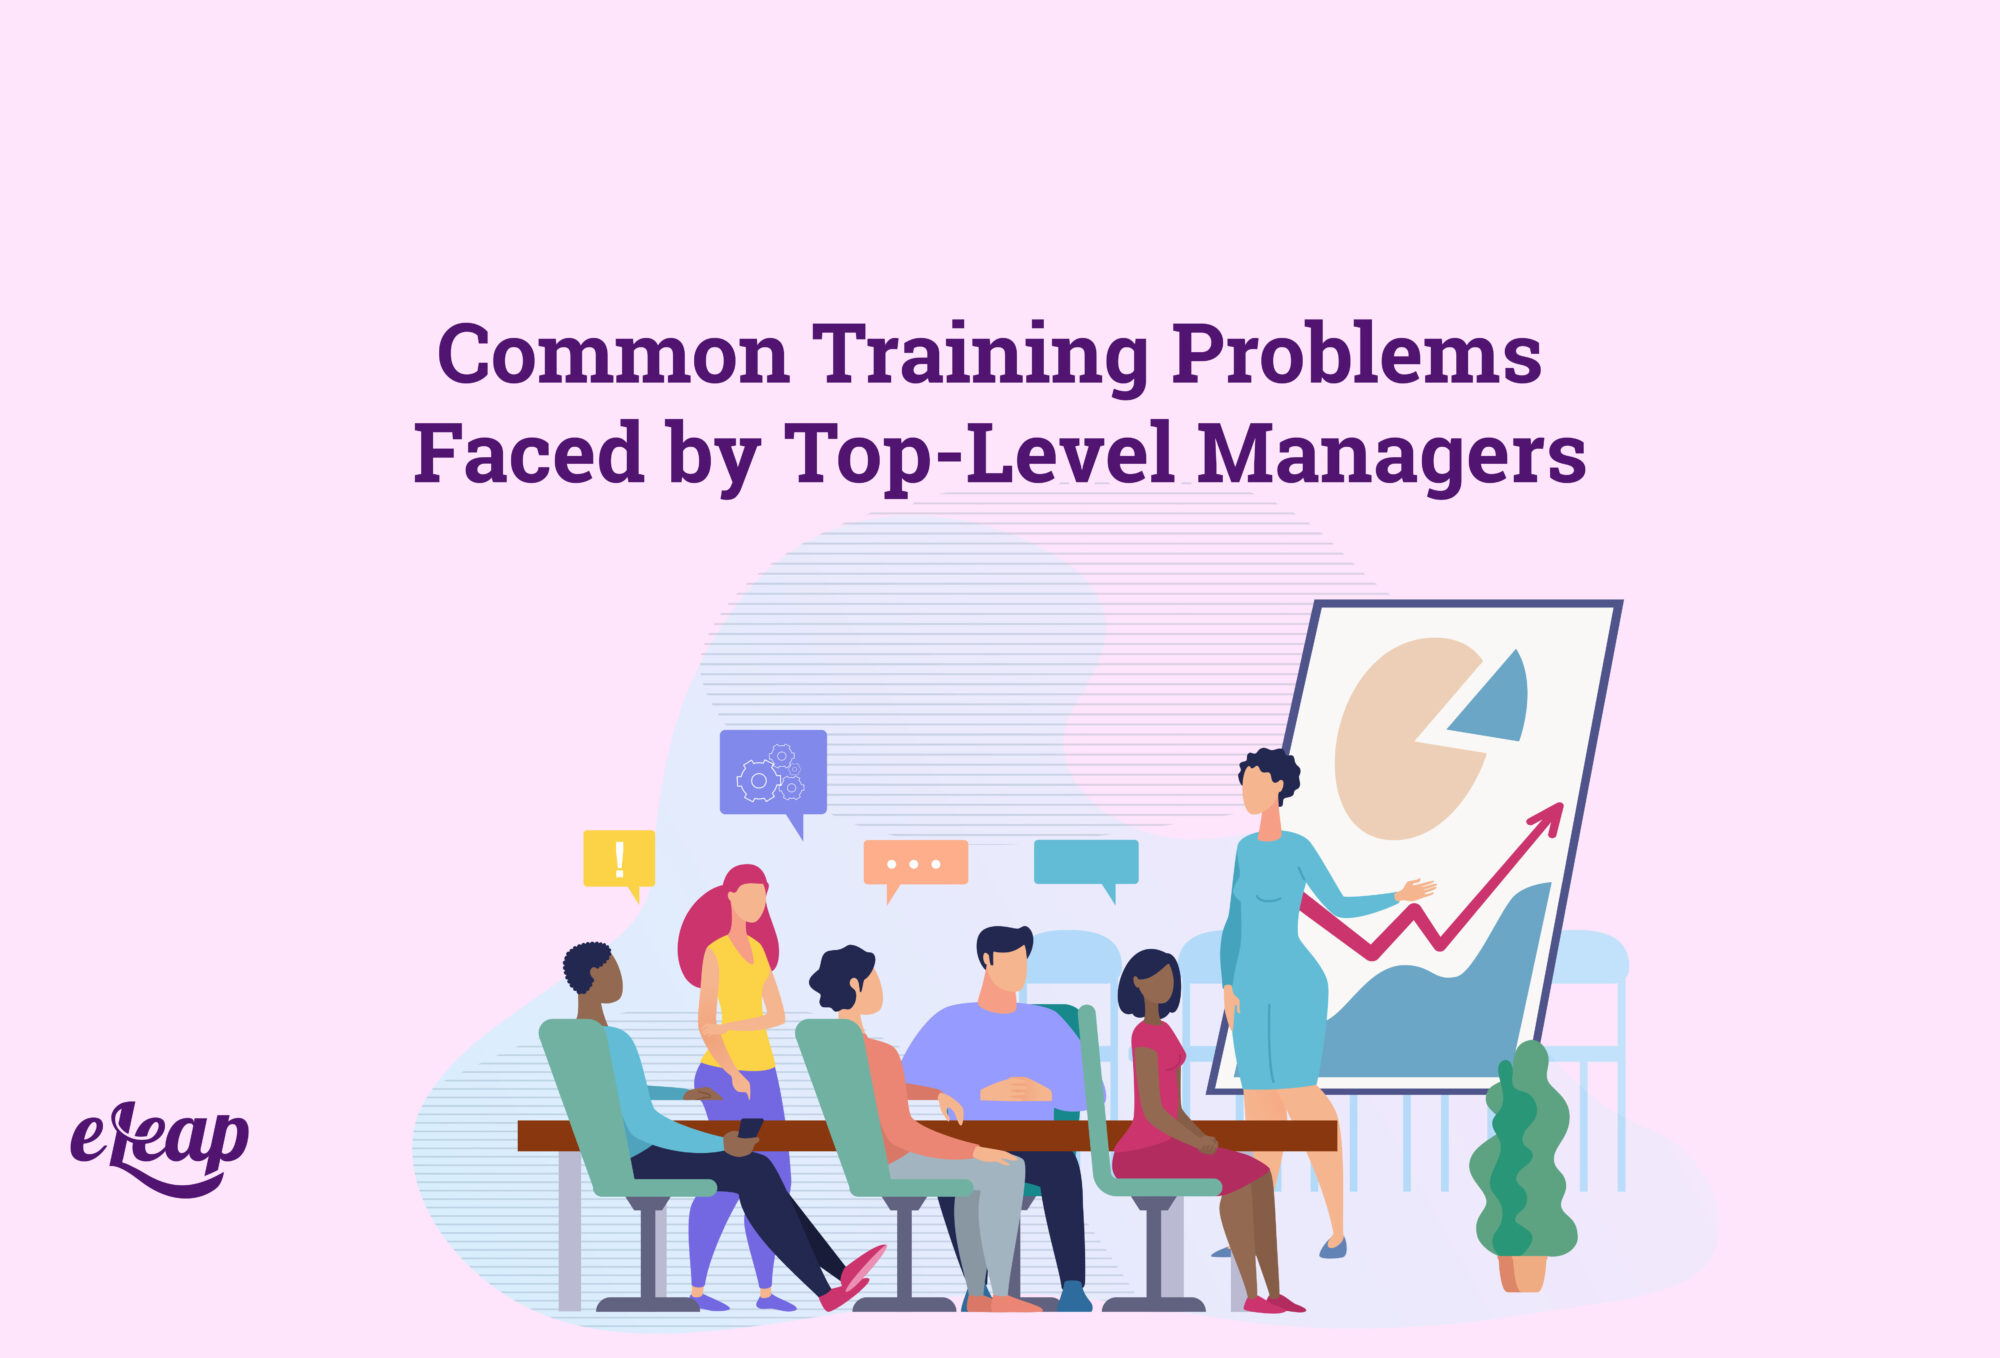 Common Training Problems Faced by Top-Level Managers